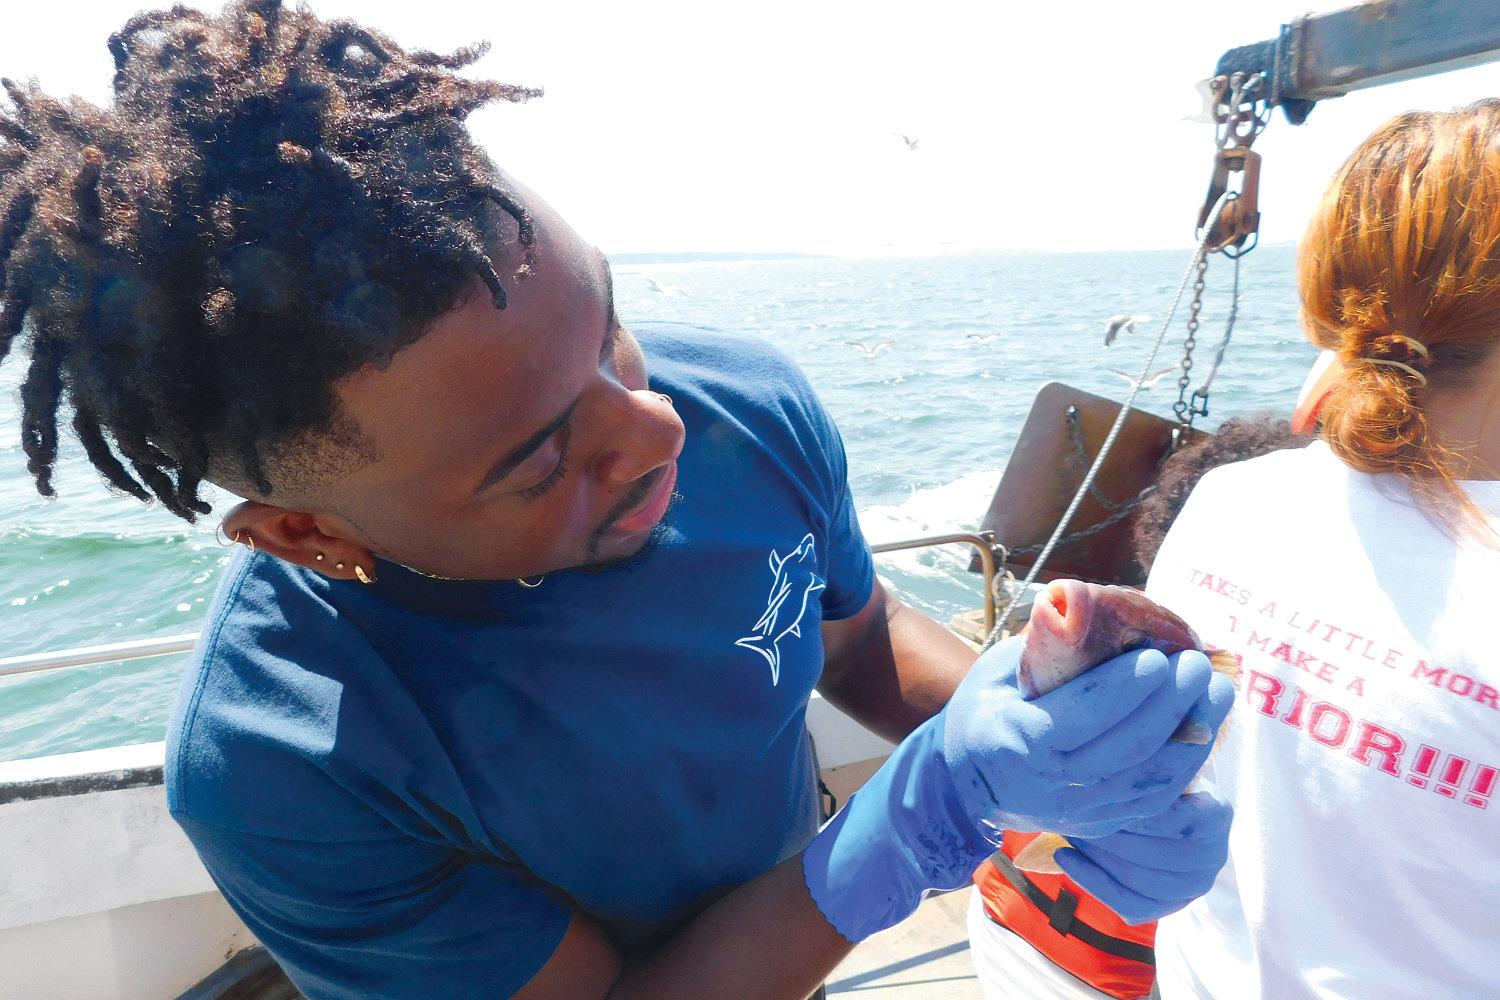 Gyasi Alexander inspects a fish on board a boat during URI's 2018 Summer Shark Camp for high school students.